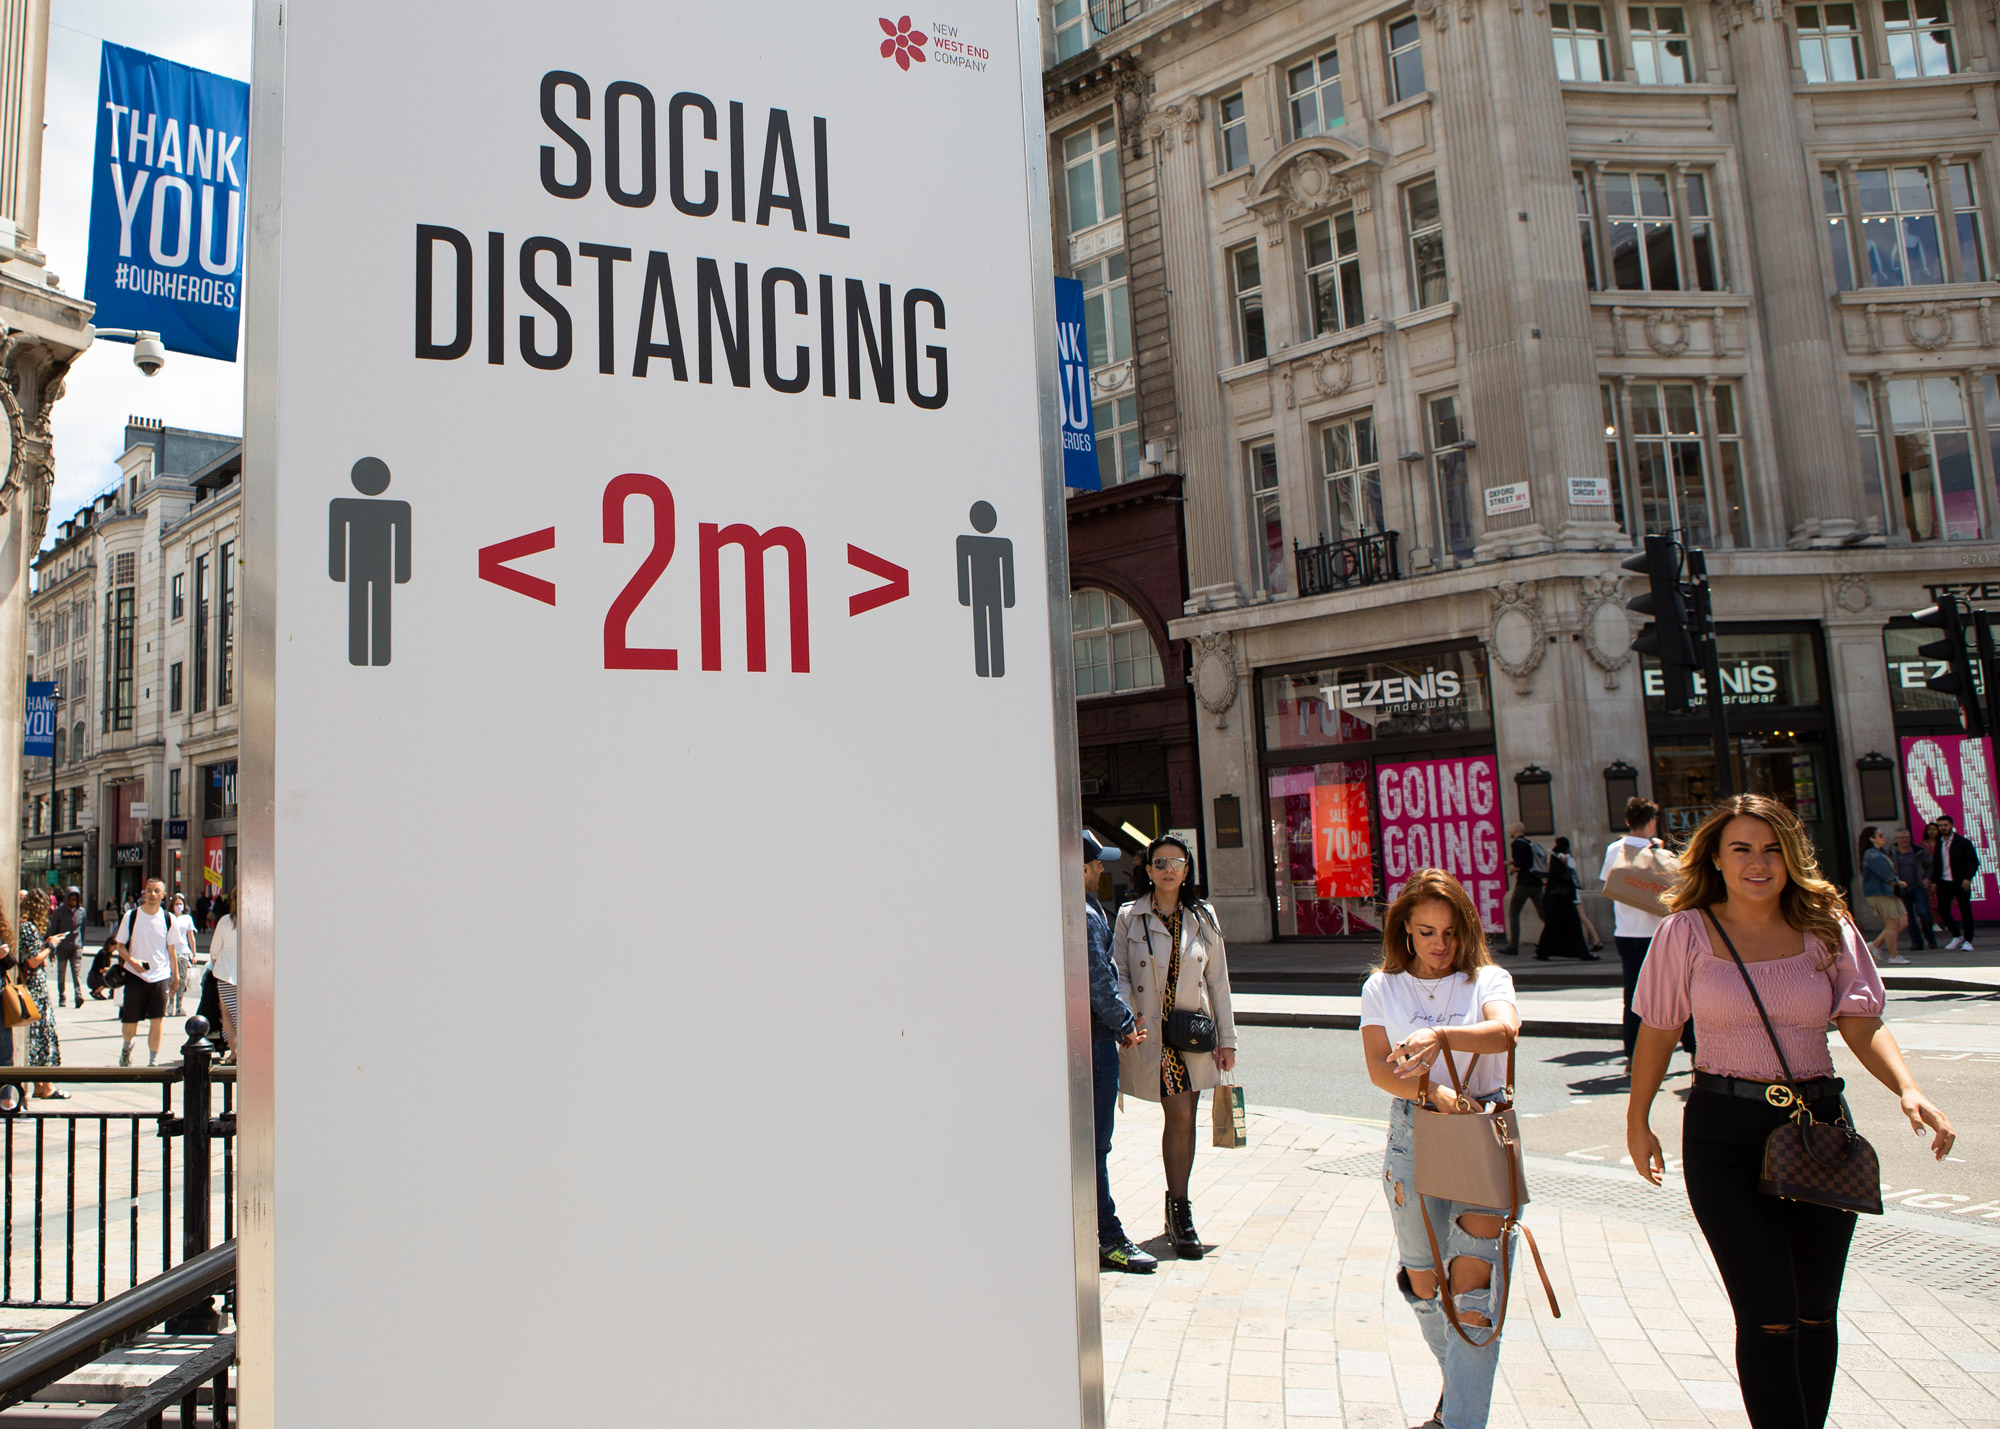 People walk past a social distancing sign in London on July 11.